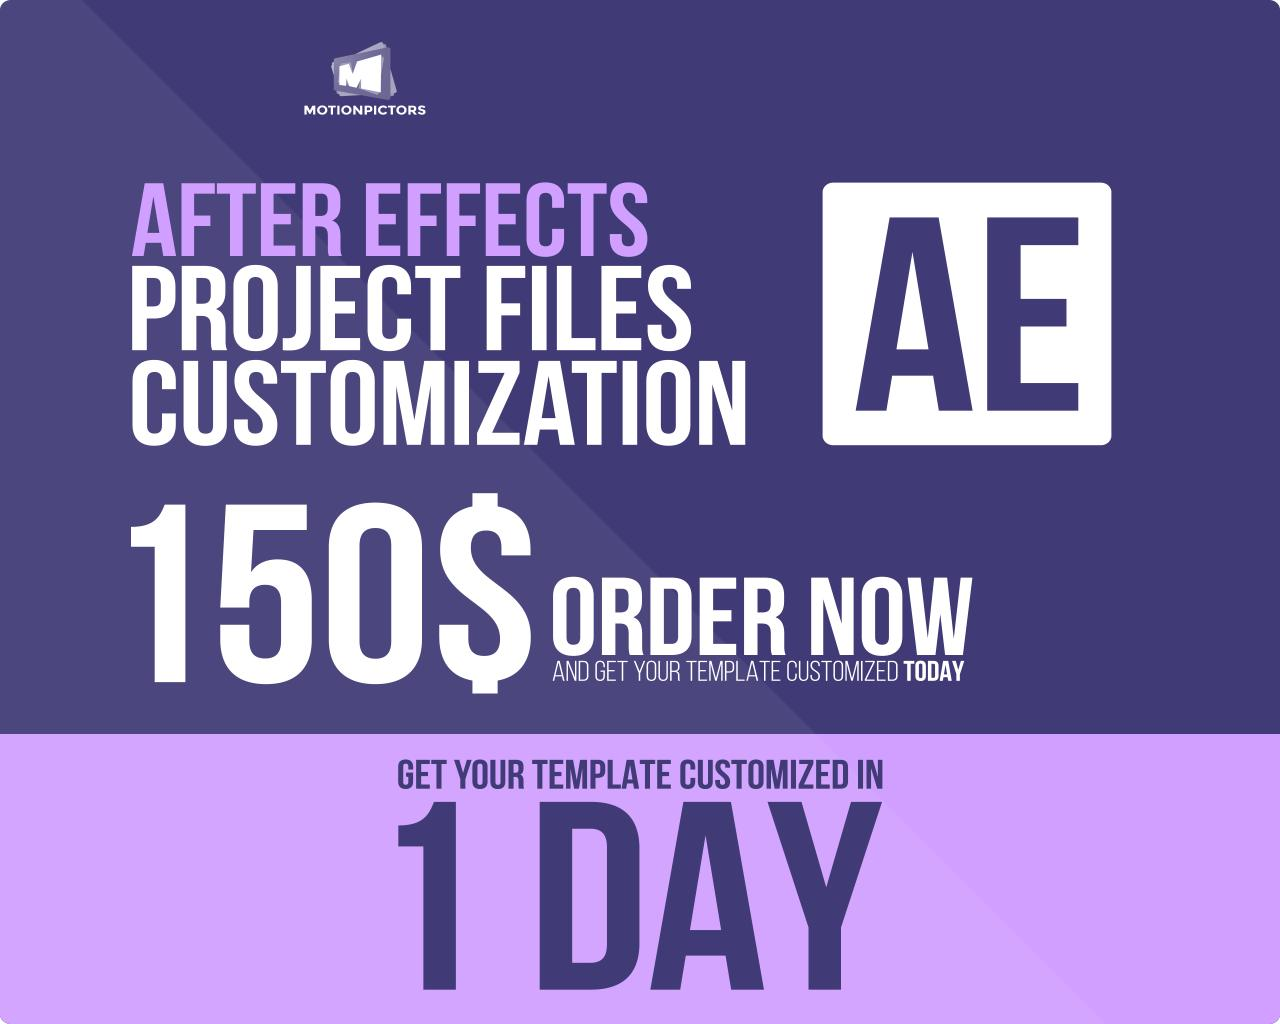 After Effects Templates Customization by motionpictors - 65401